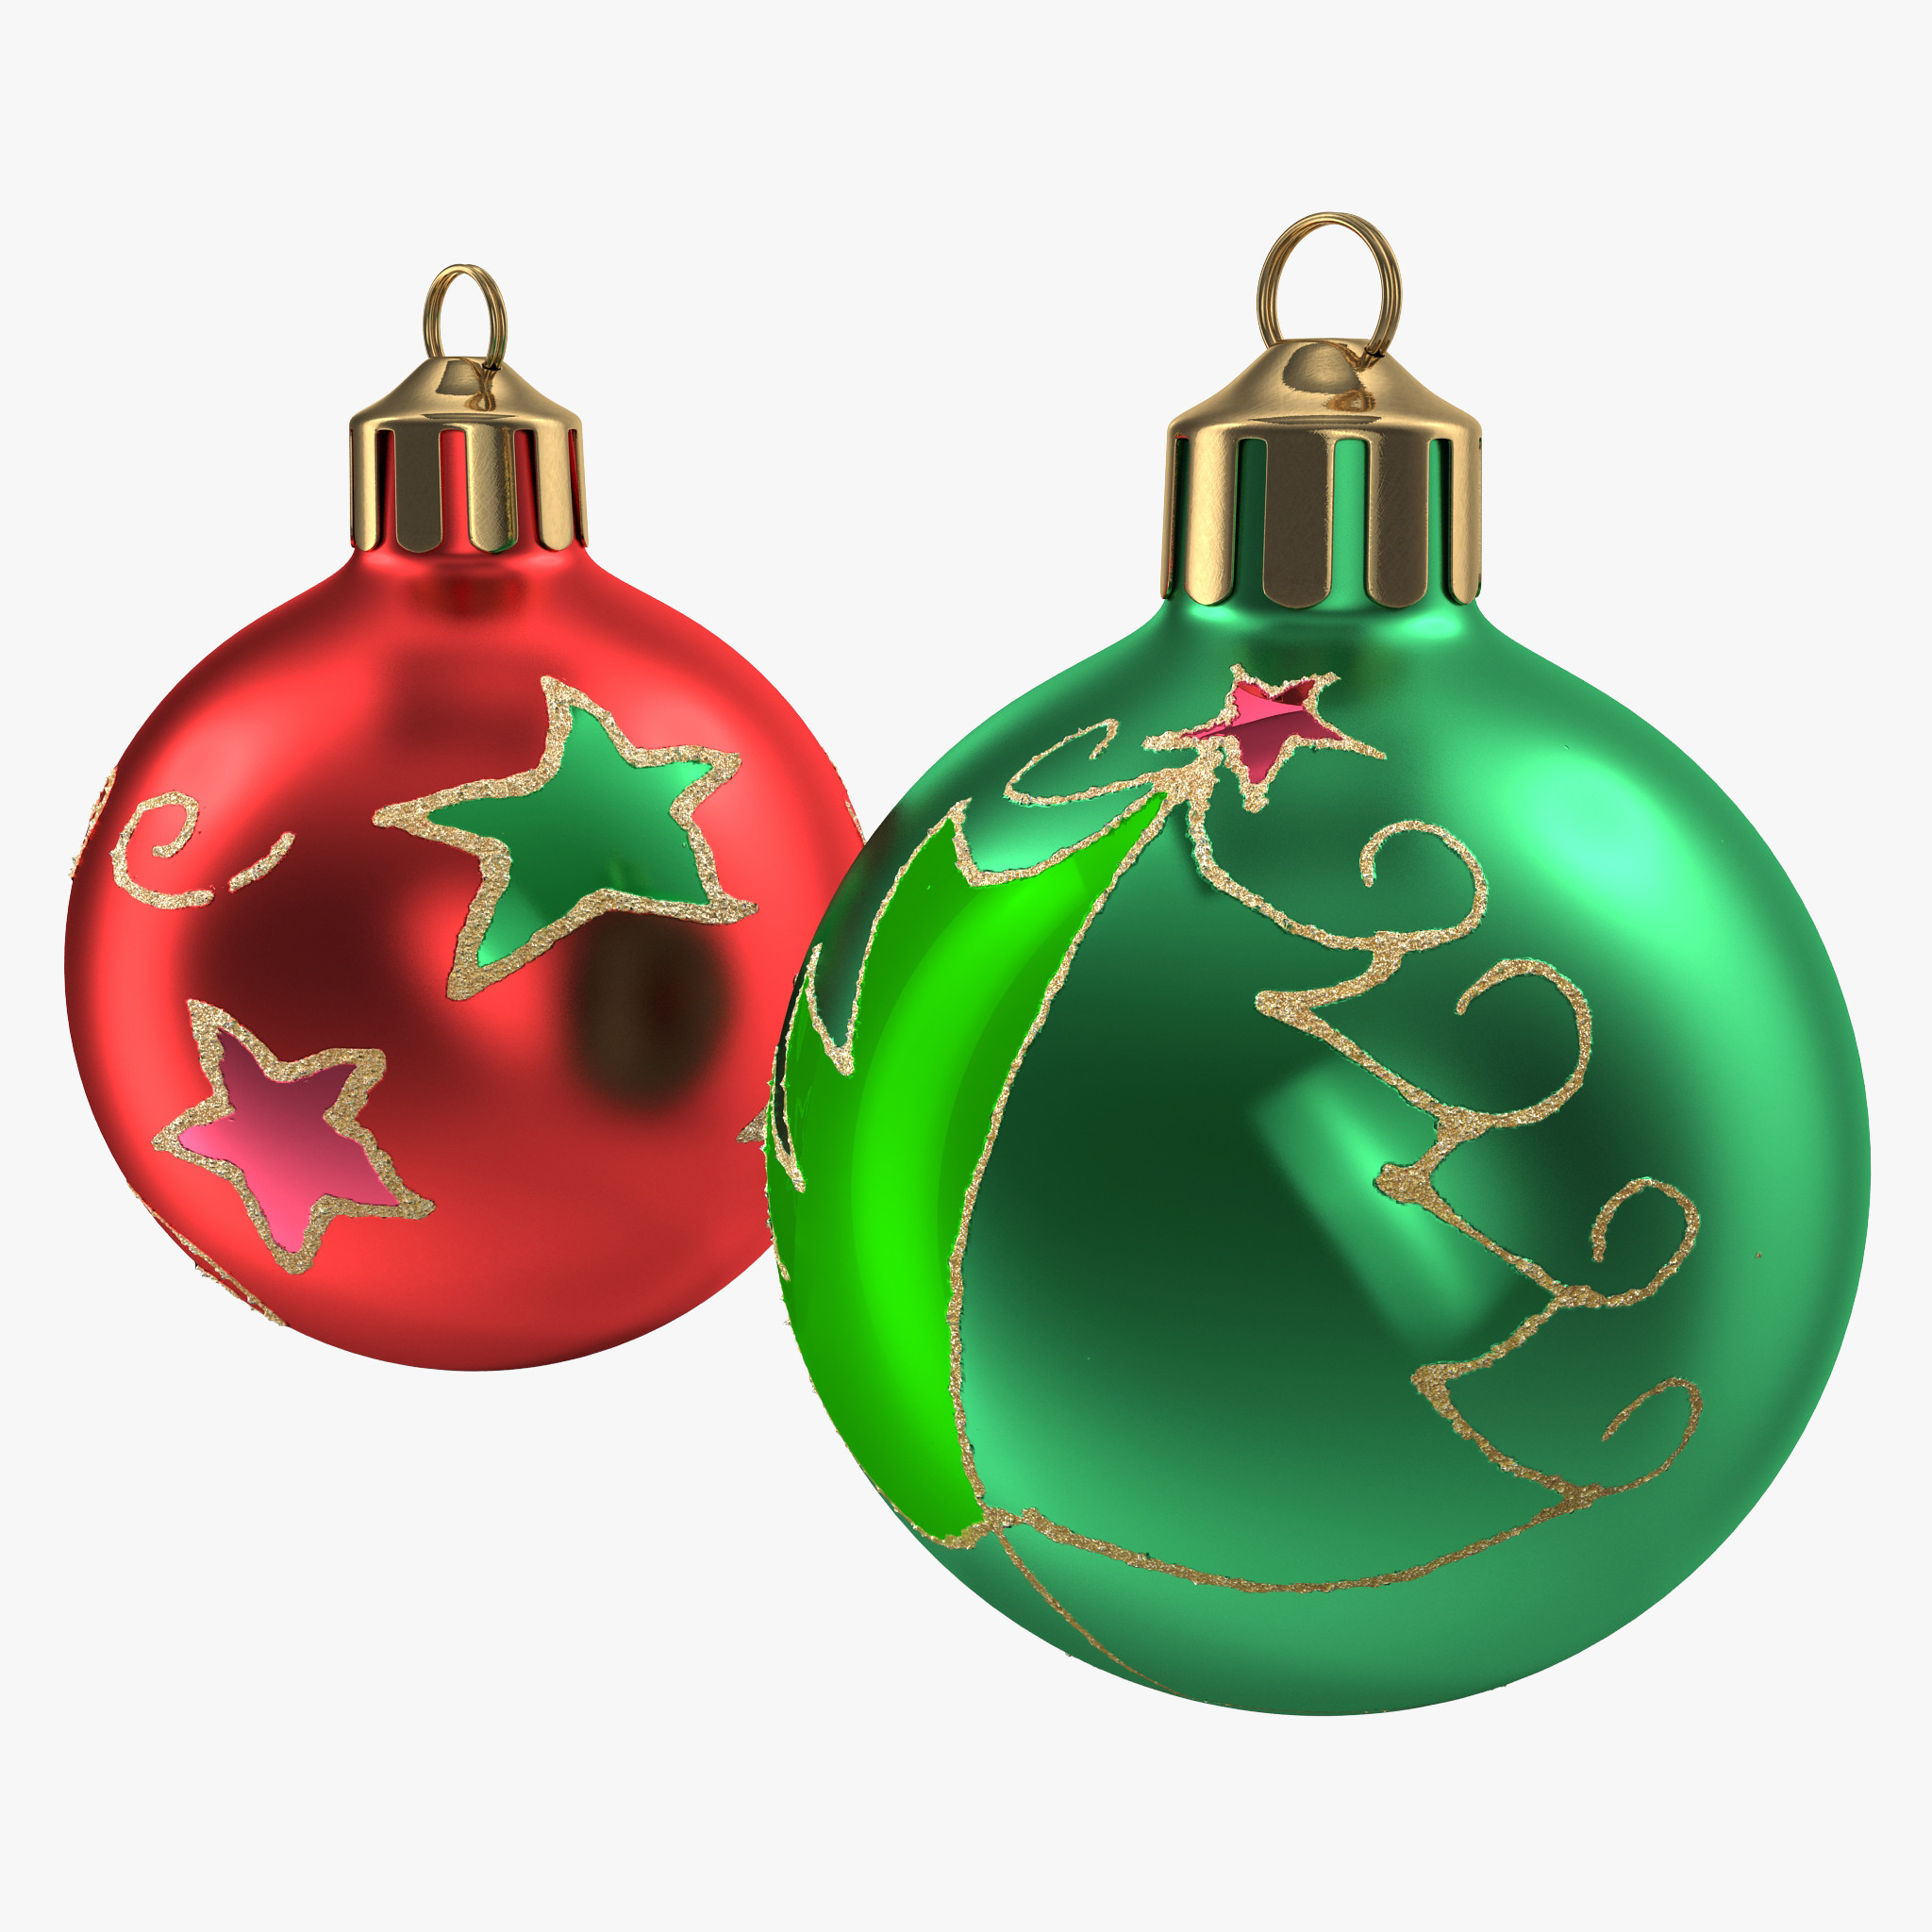 Christmas Ornament Balls – Happy Holidays!